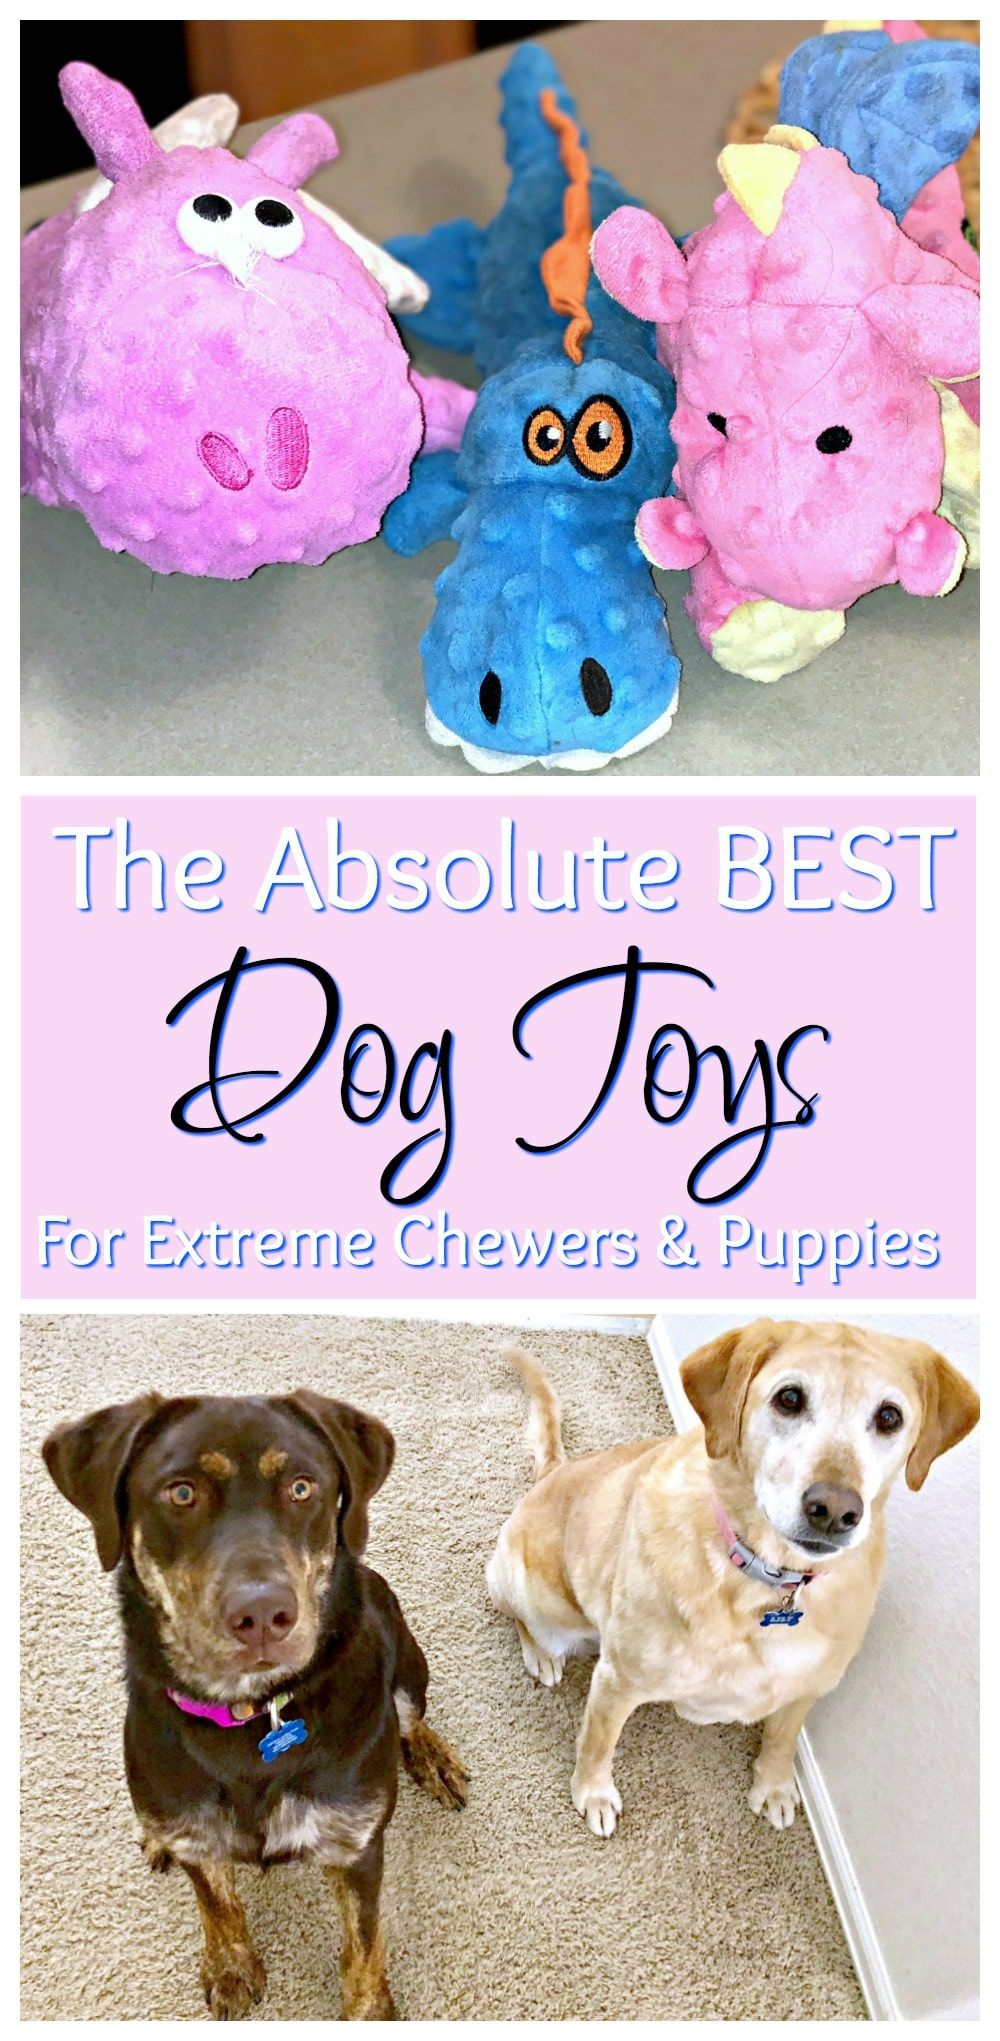 Dog toys for extreme chewers diy dog toys cute dog toys